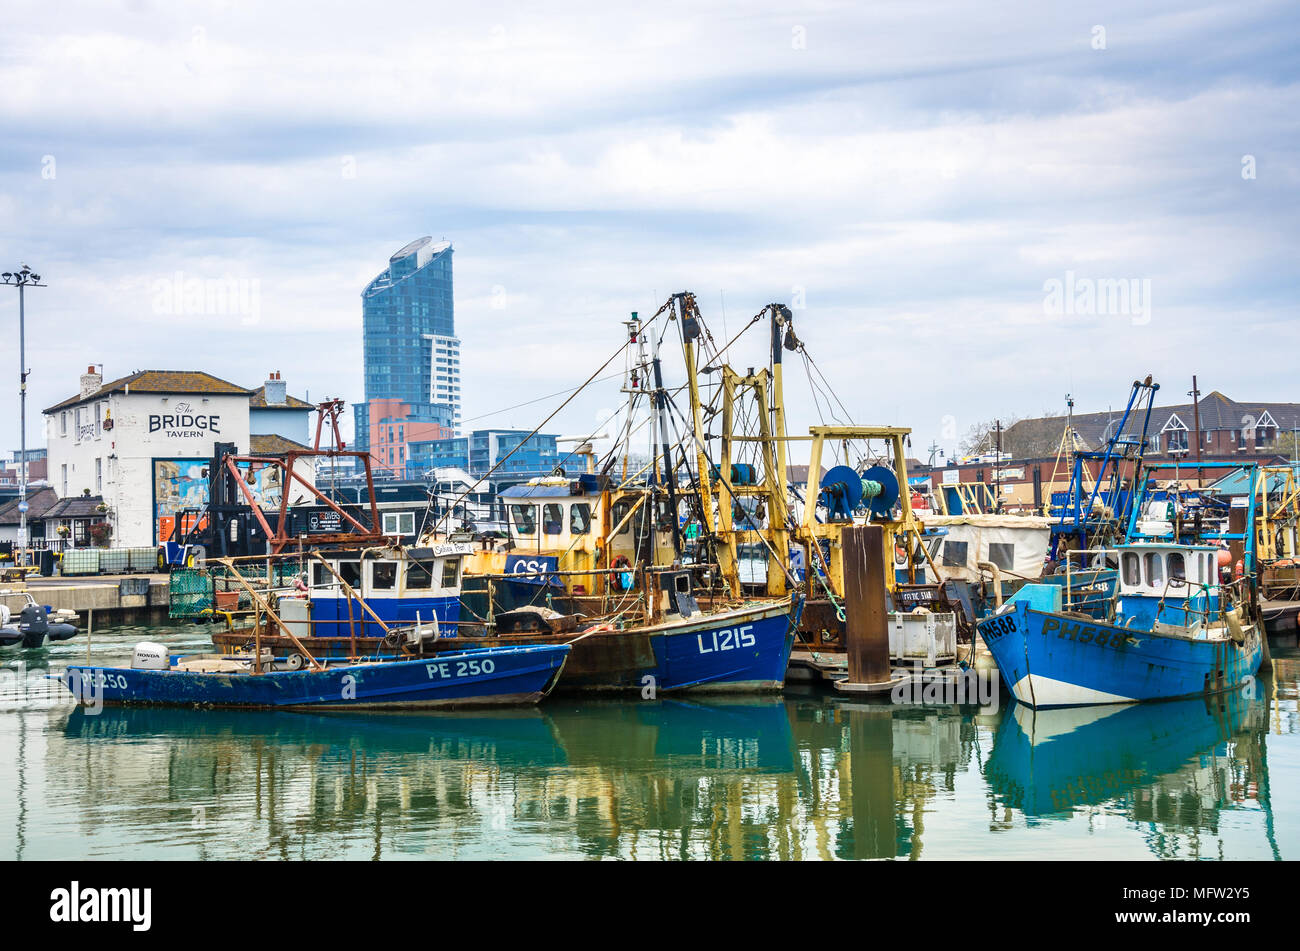 fishing-boats-moored-in-portsmouth-harbout-in-the-background-is-the-lipstick-tower-at-gunwharf-quays-MFW2Y5.jpg